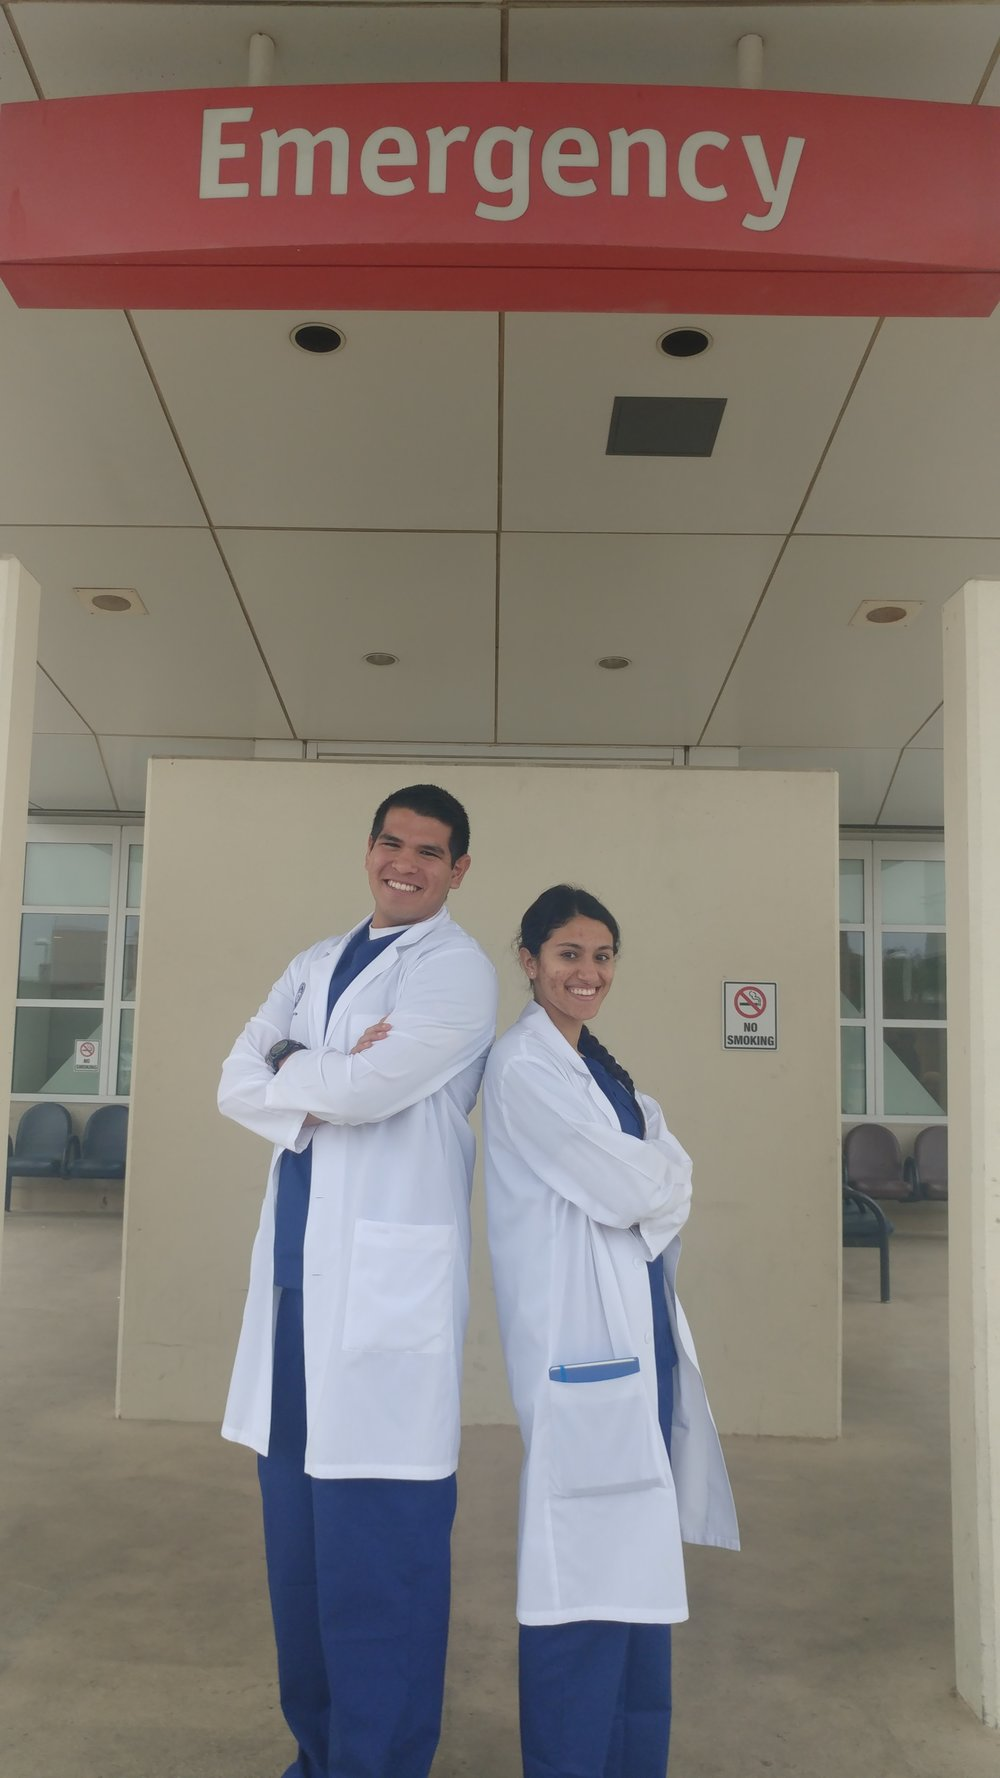 Andrew Hoover and Hannah Abdelmessih pose in their white coats.